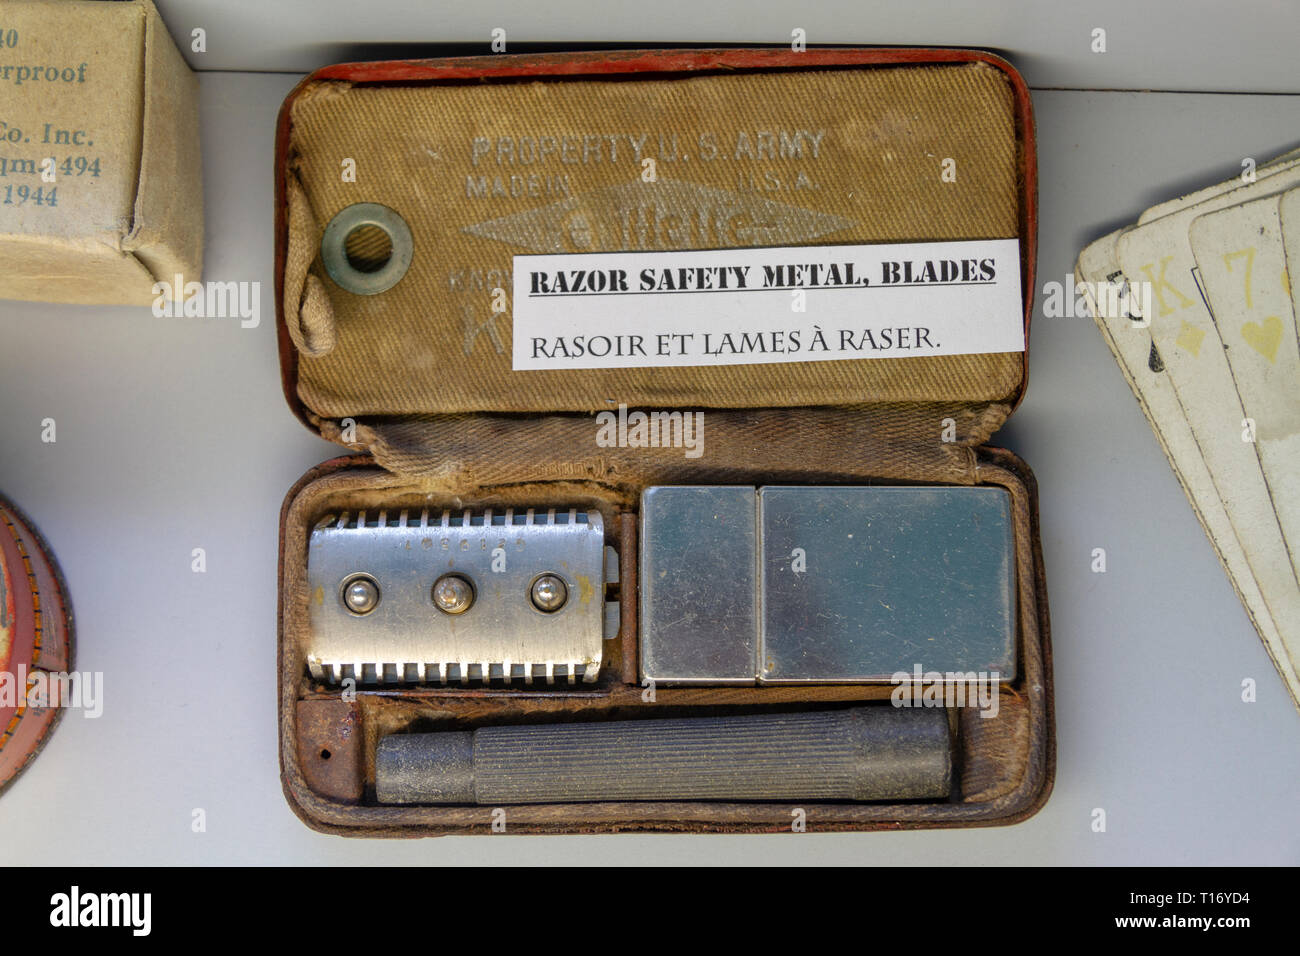 A US Army razor kit (by Gillette) from World War Two on display in The Airborne Museum, Sainte-Mère-Eglise, Normandy, France. - Stock Image